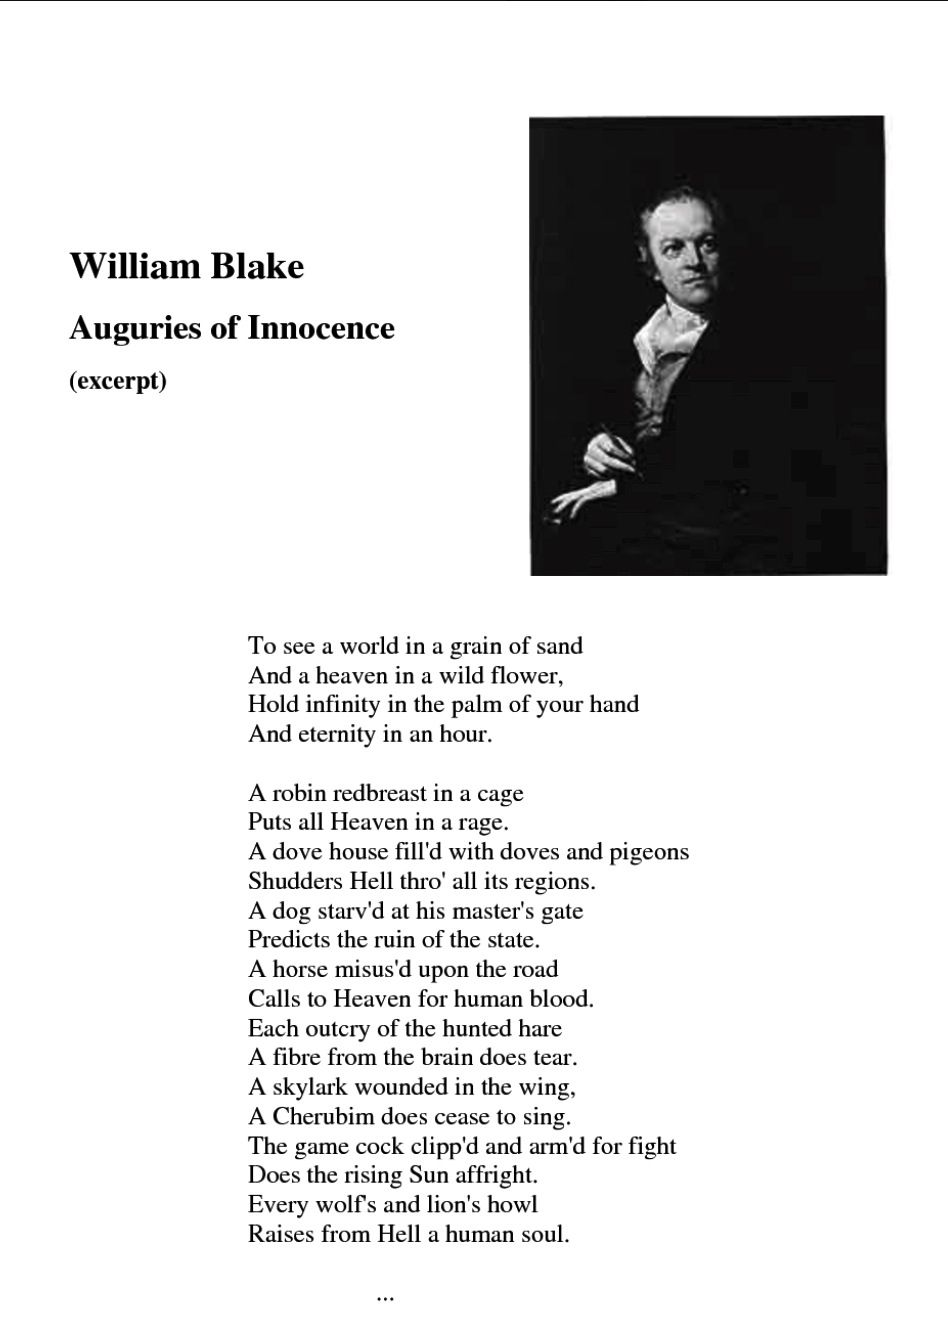 the tyger poem essay The tyger - blake this research paper the tyger - blake and other 63,000+ term papers, college essay examples and free essays are available now on reviewessayscom.